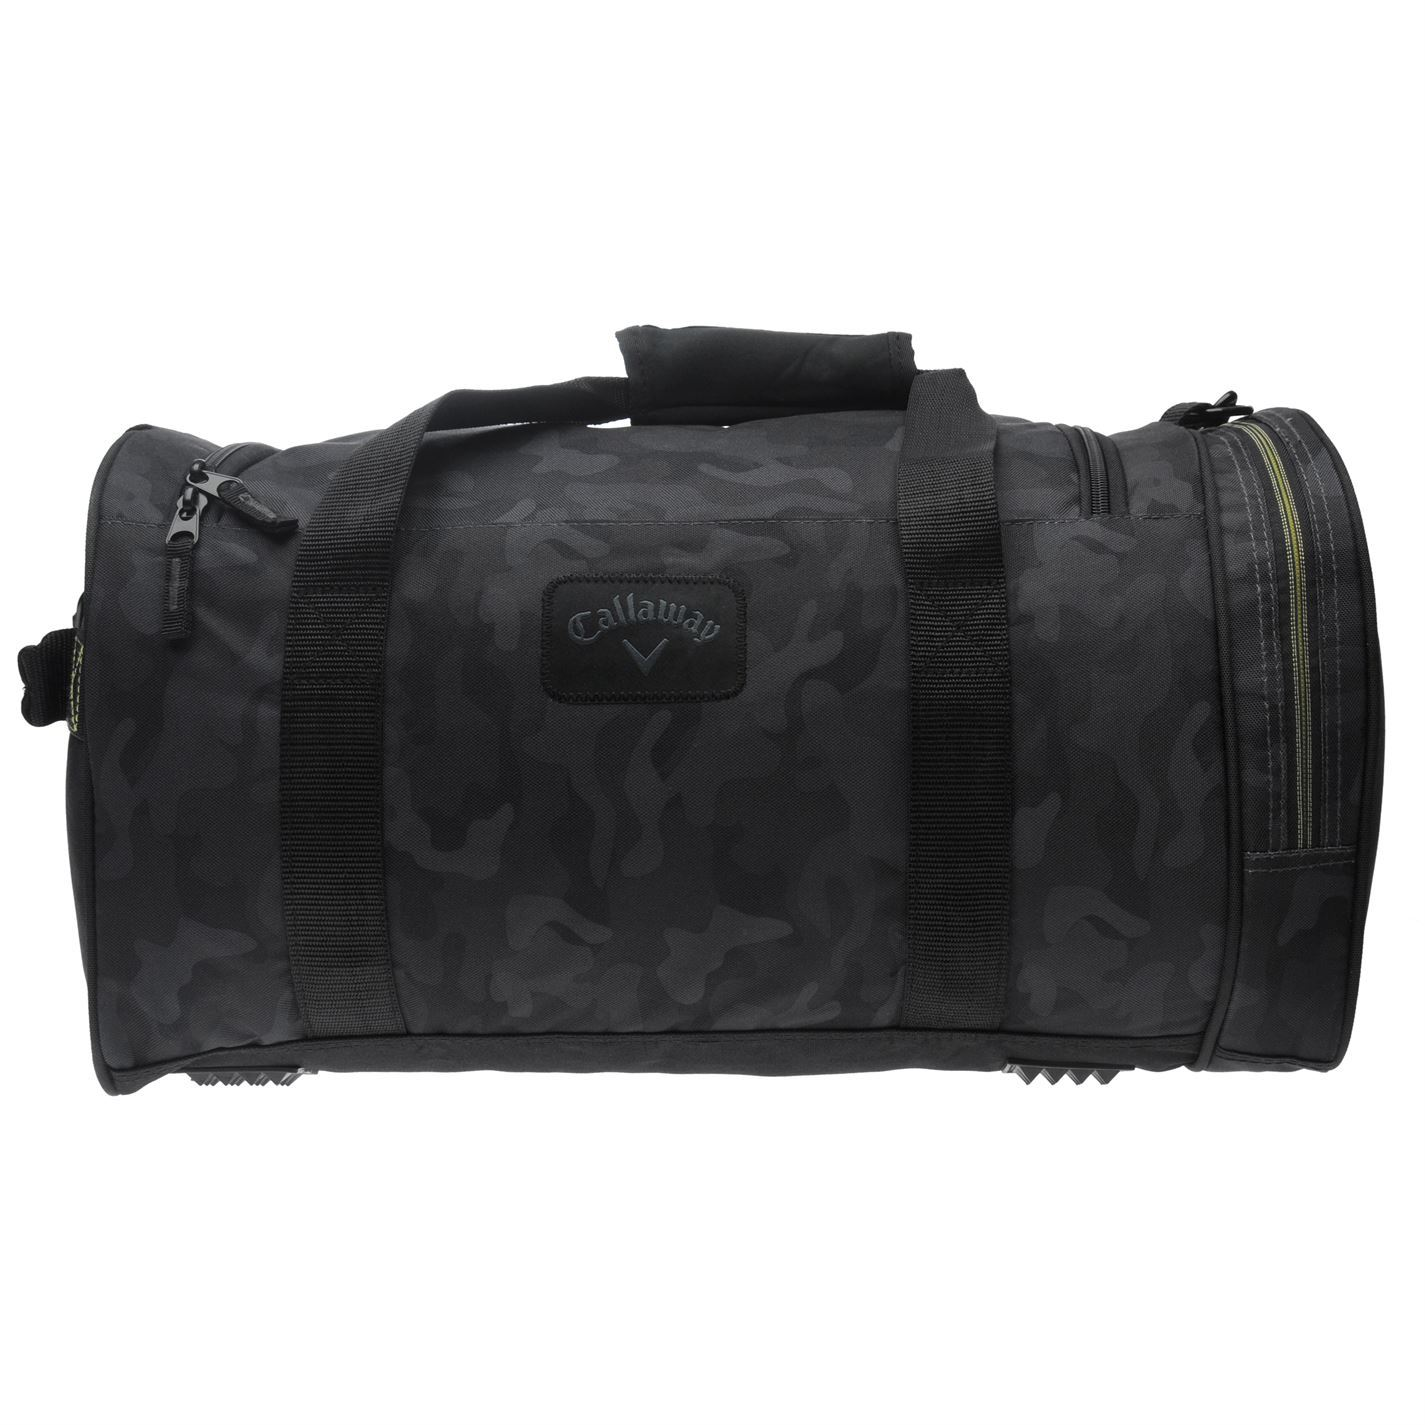 690d17dc7f149c ... Callaway Camouflage Small Duffle Bag Black Kitbag Gymbag Holdall  Carryall ...